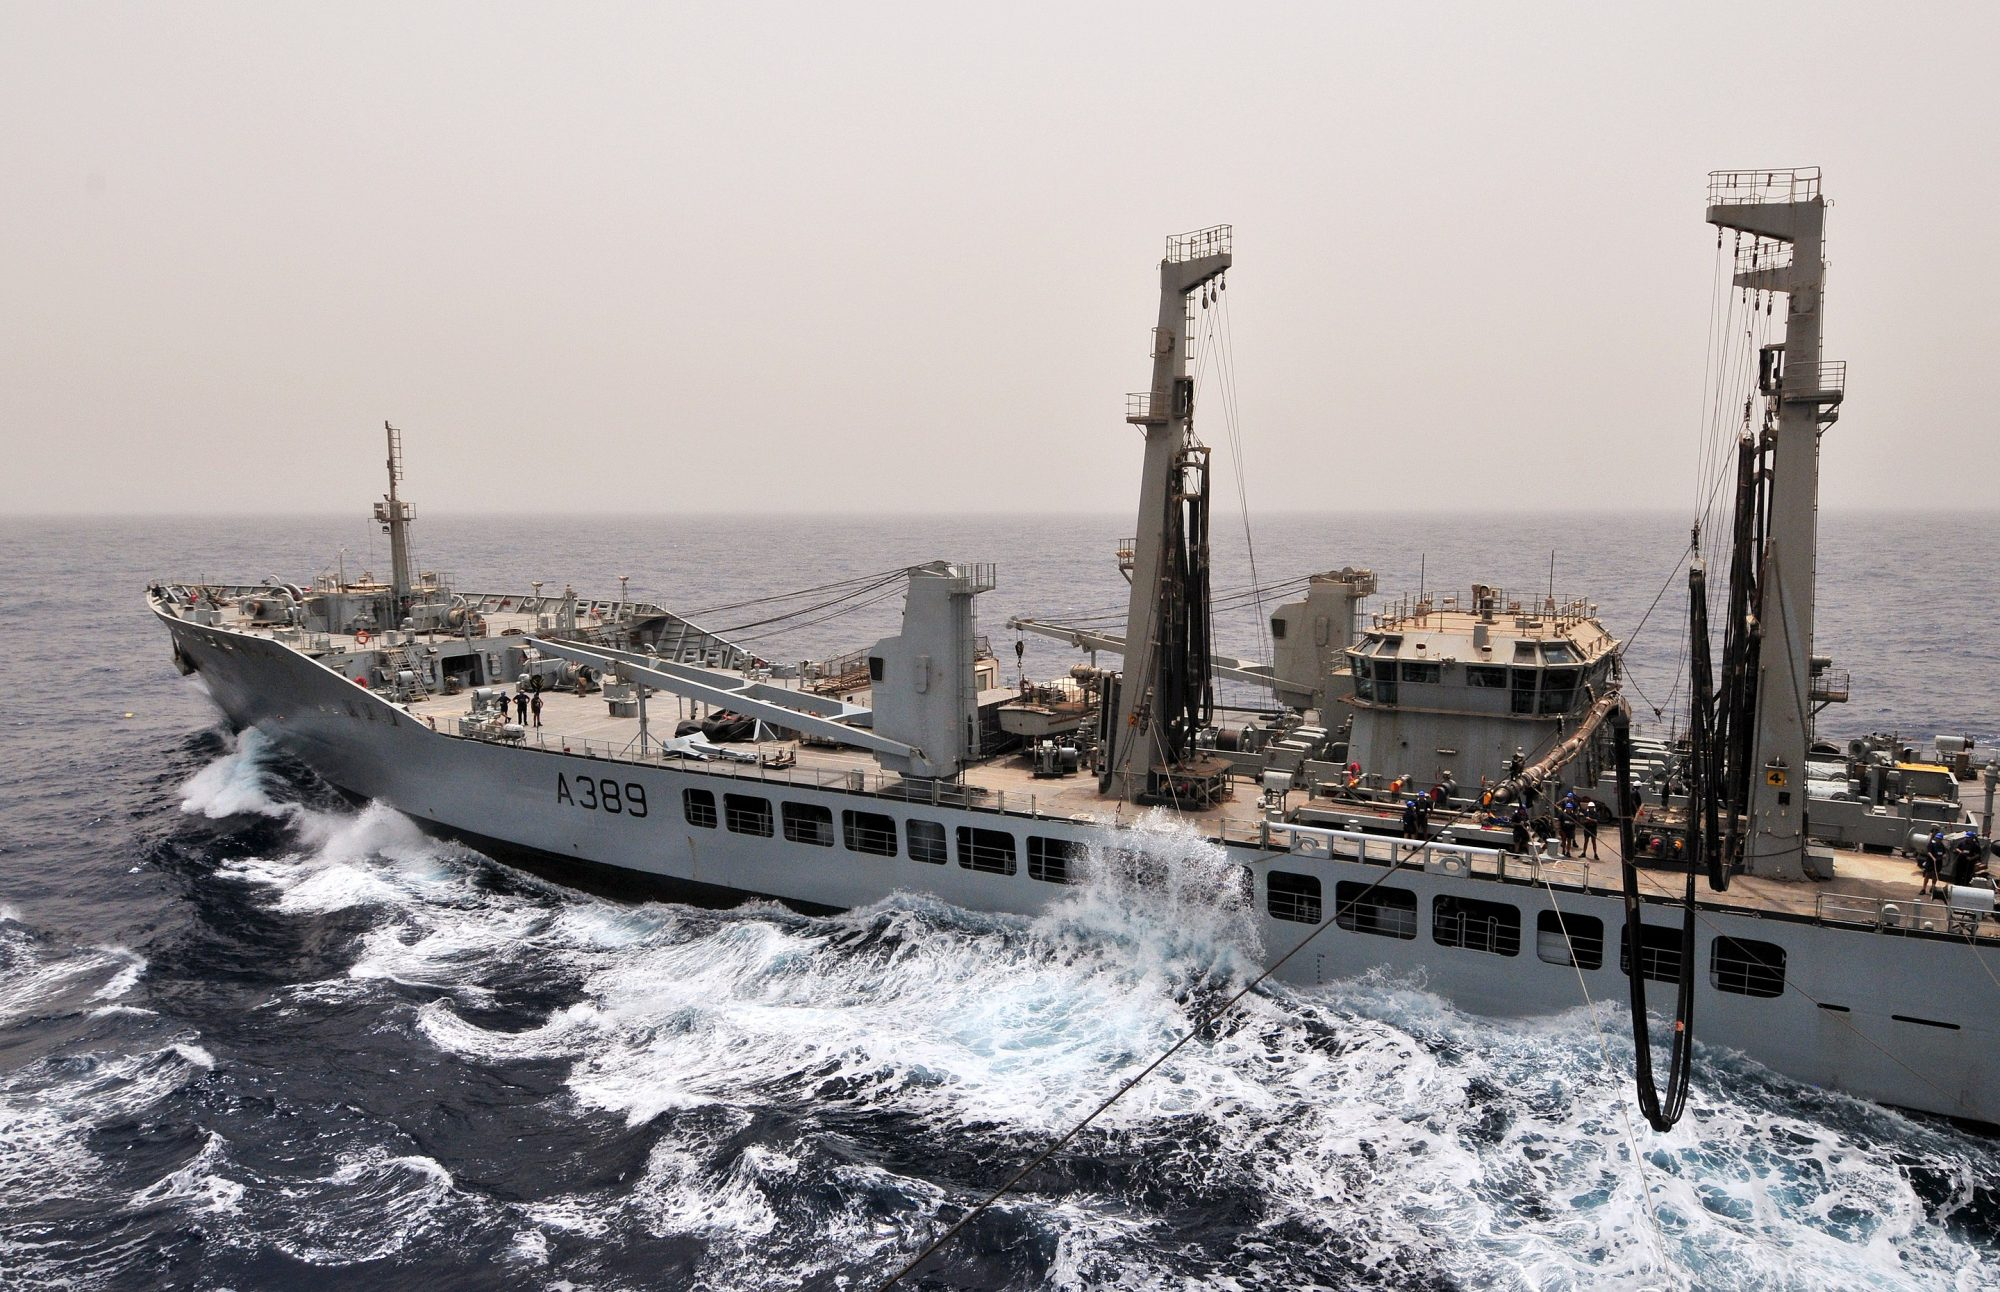 RFA Wave Knight (A 389)